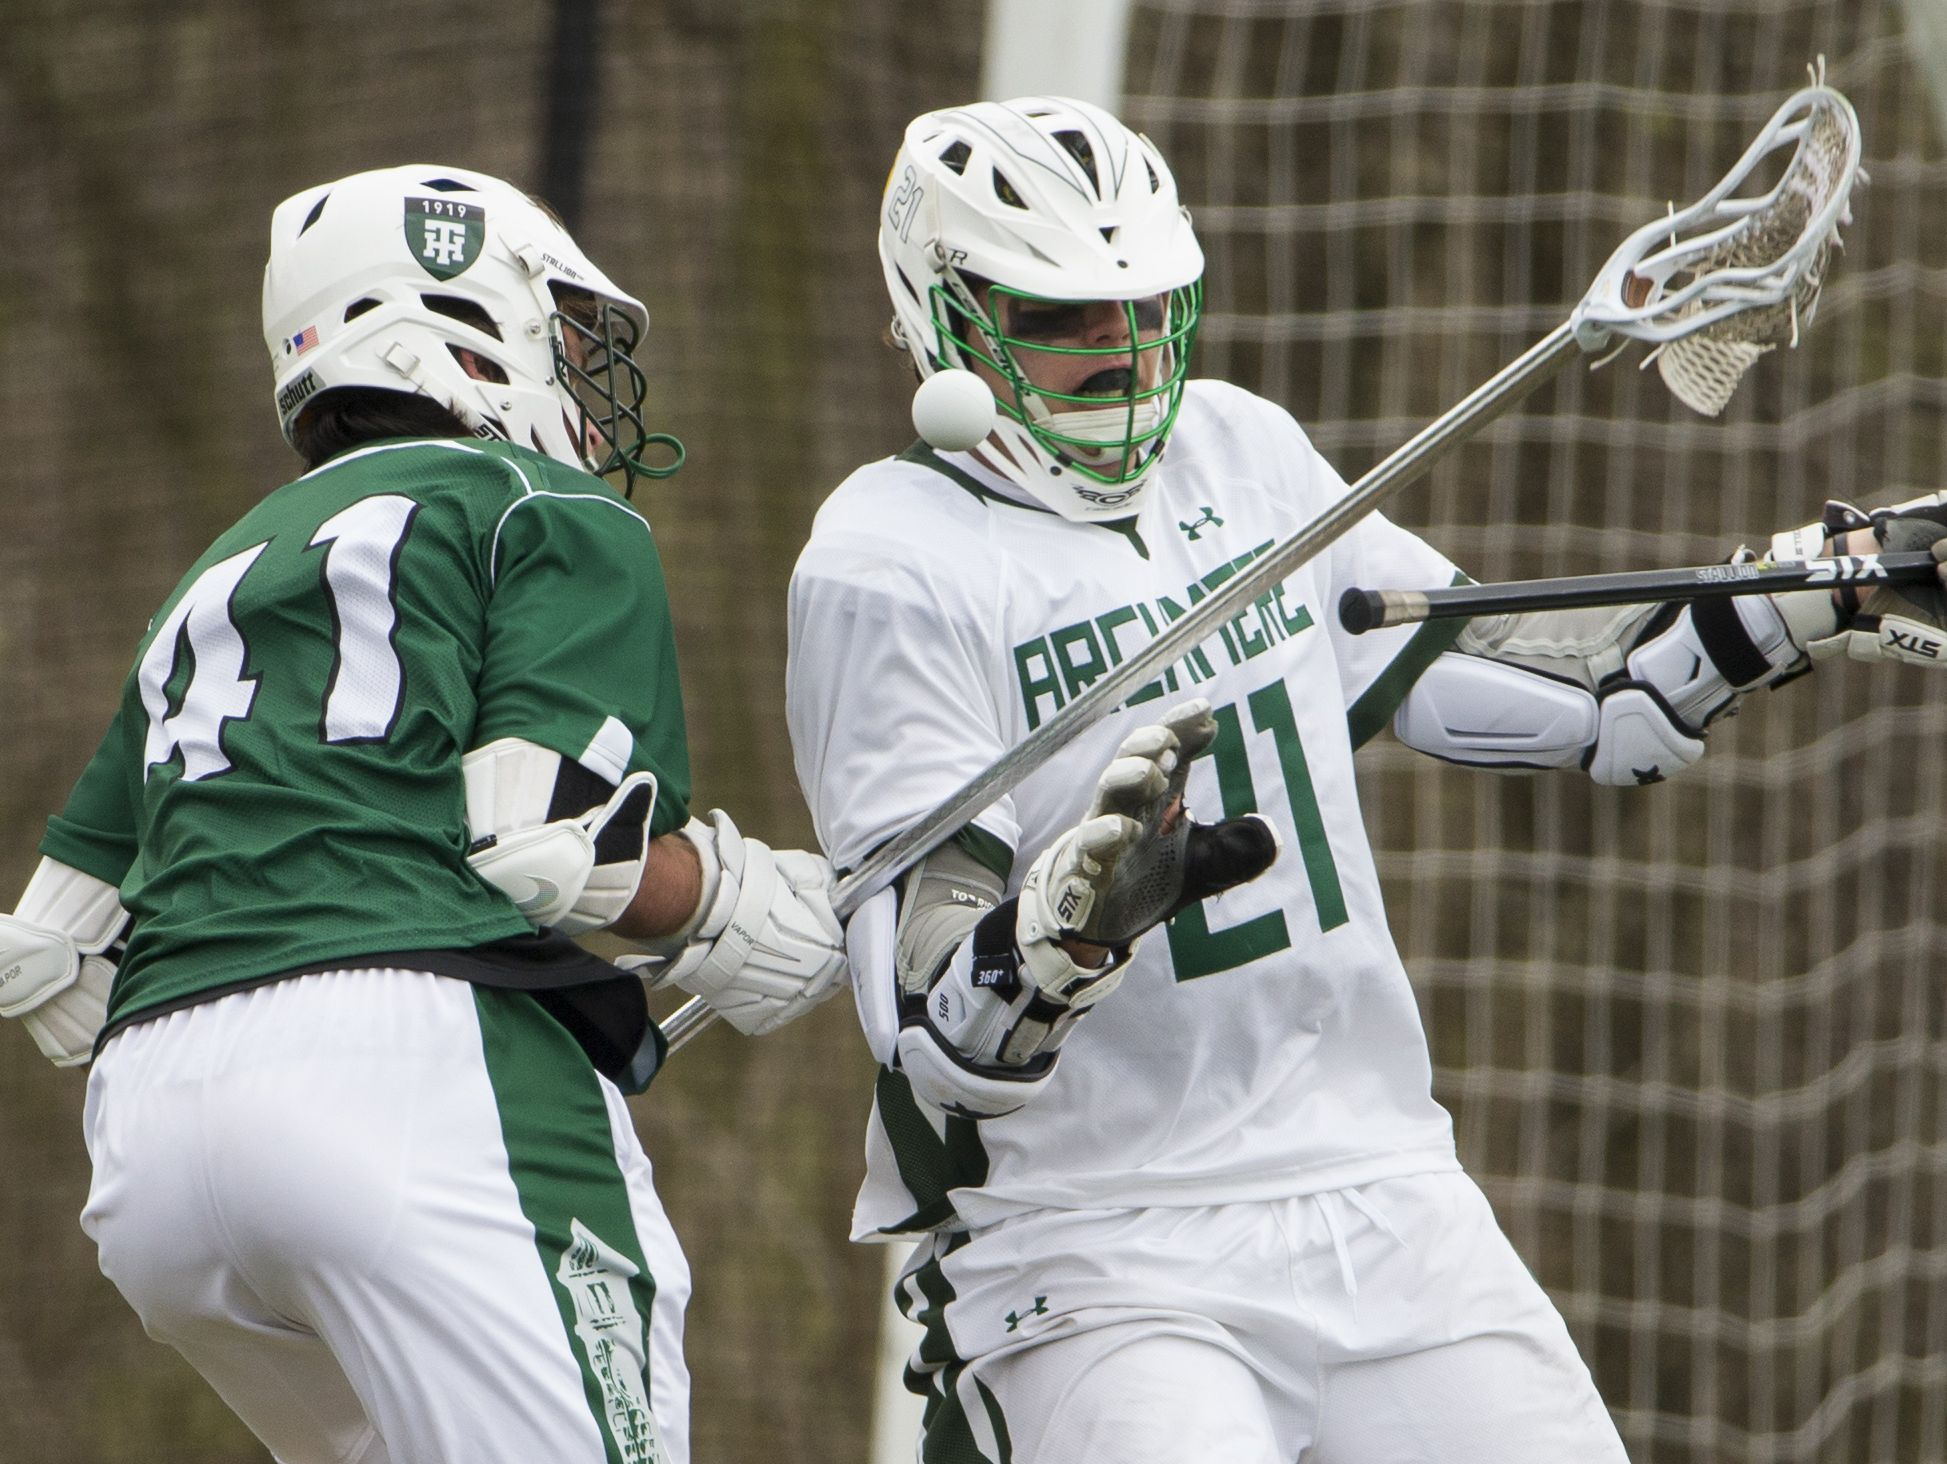 Tower Hill's Richard Corroon (left) gets the ball loose from Archmere's Mitchell Moyer in the second half of Archmere's 12-7 win Saturday.